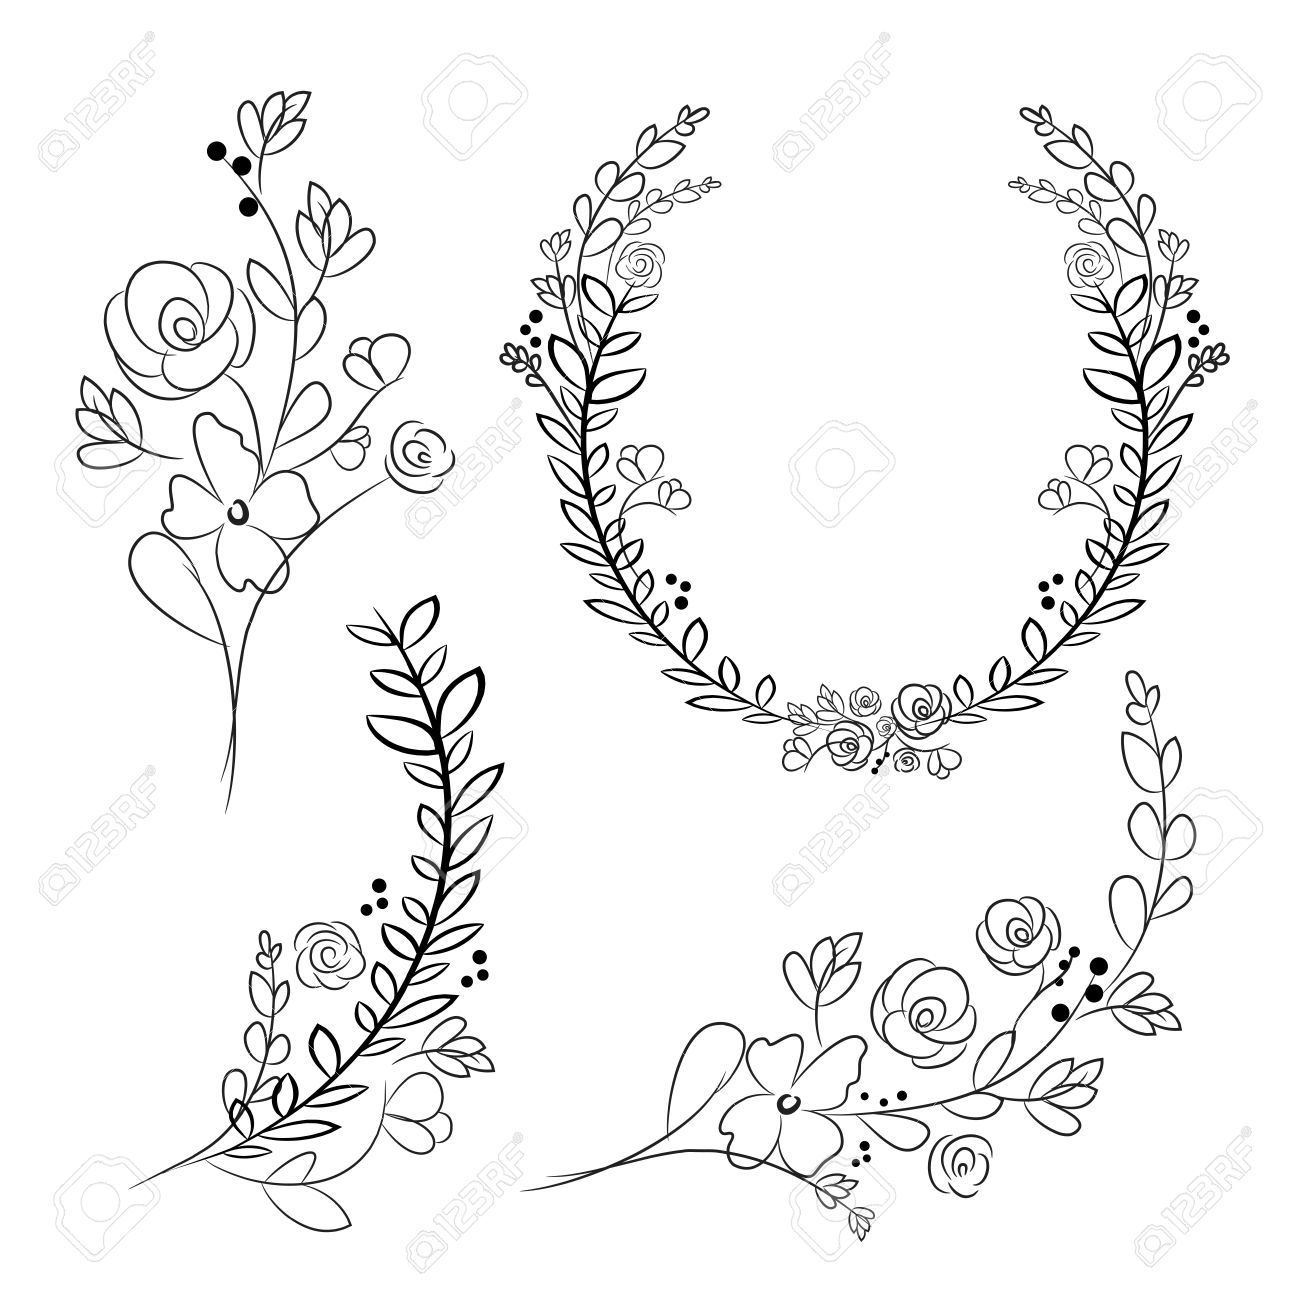 Flower Wreath Drawing